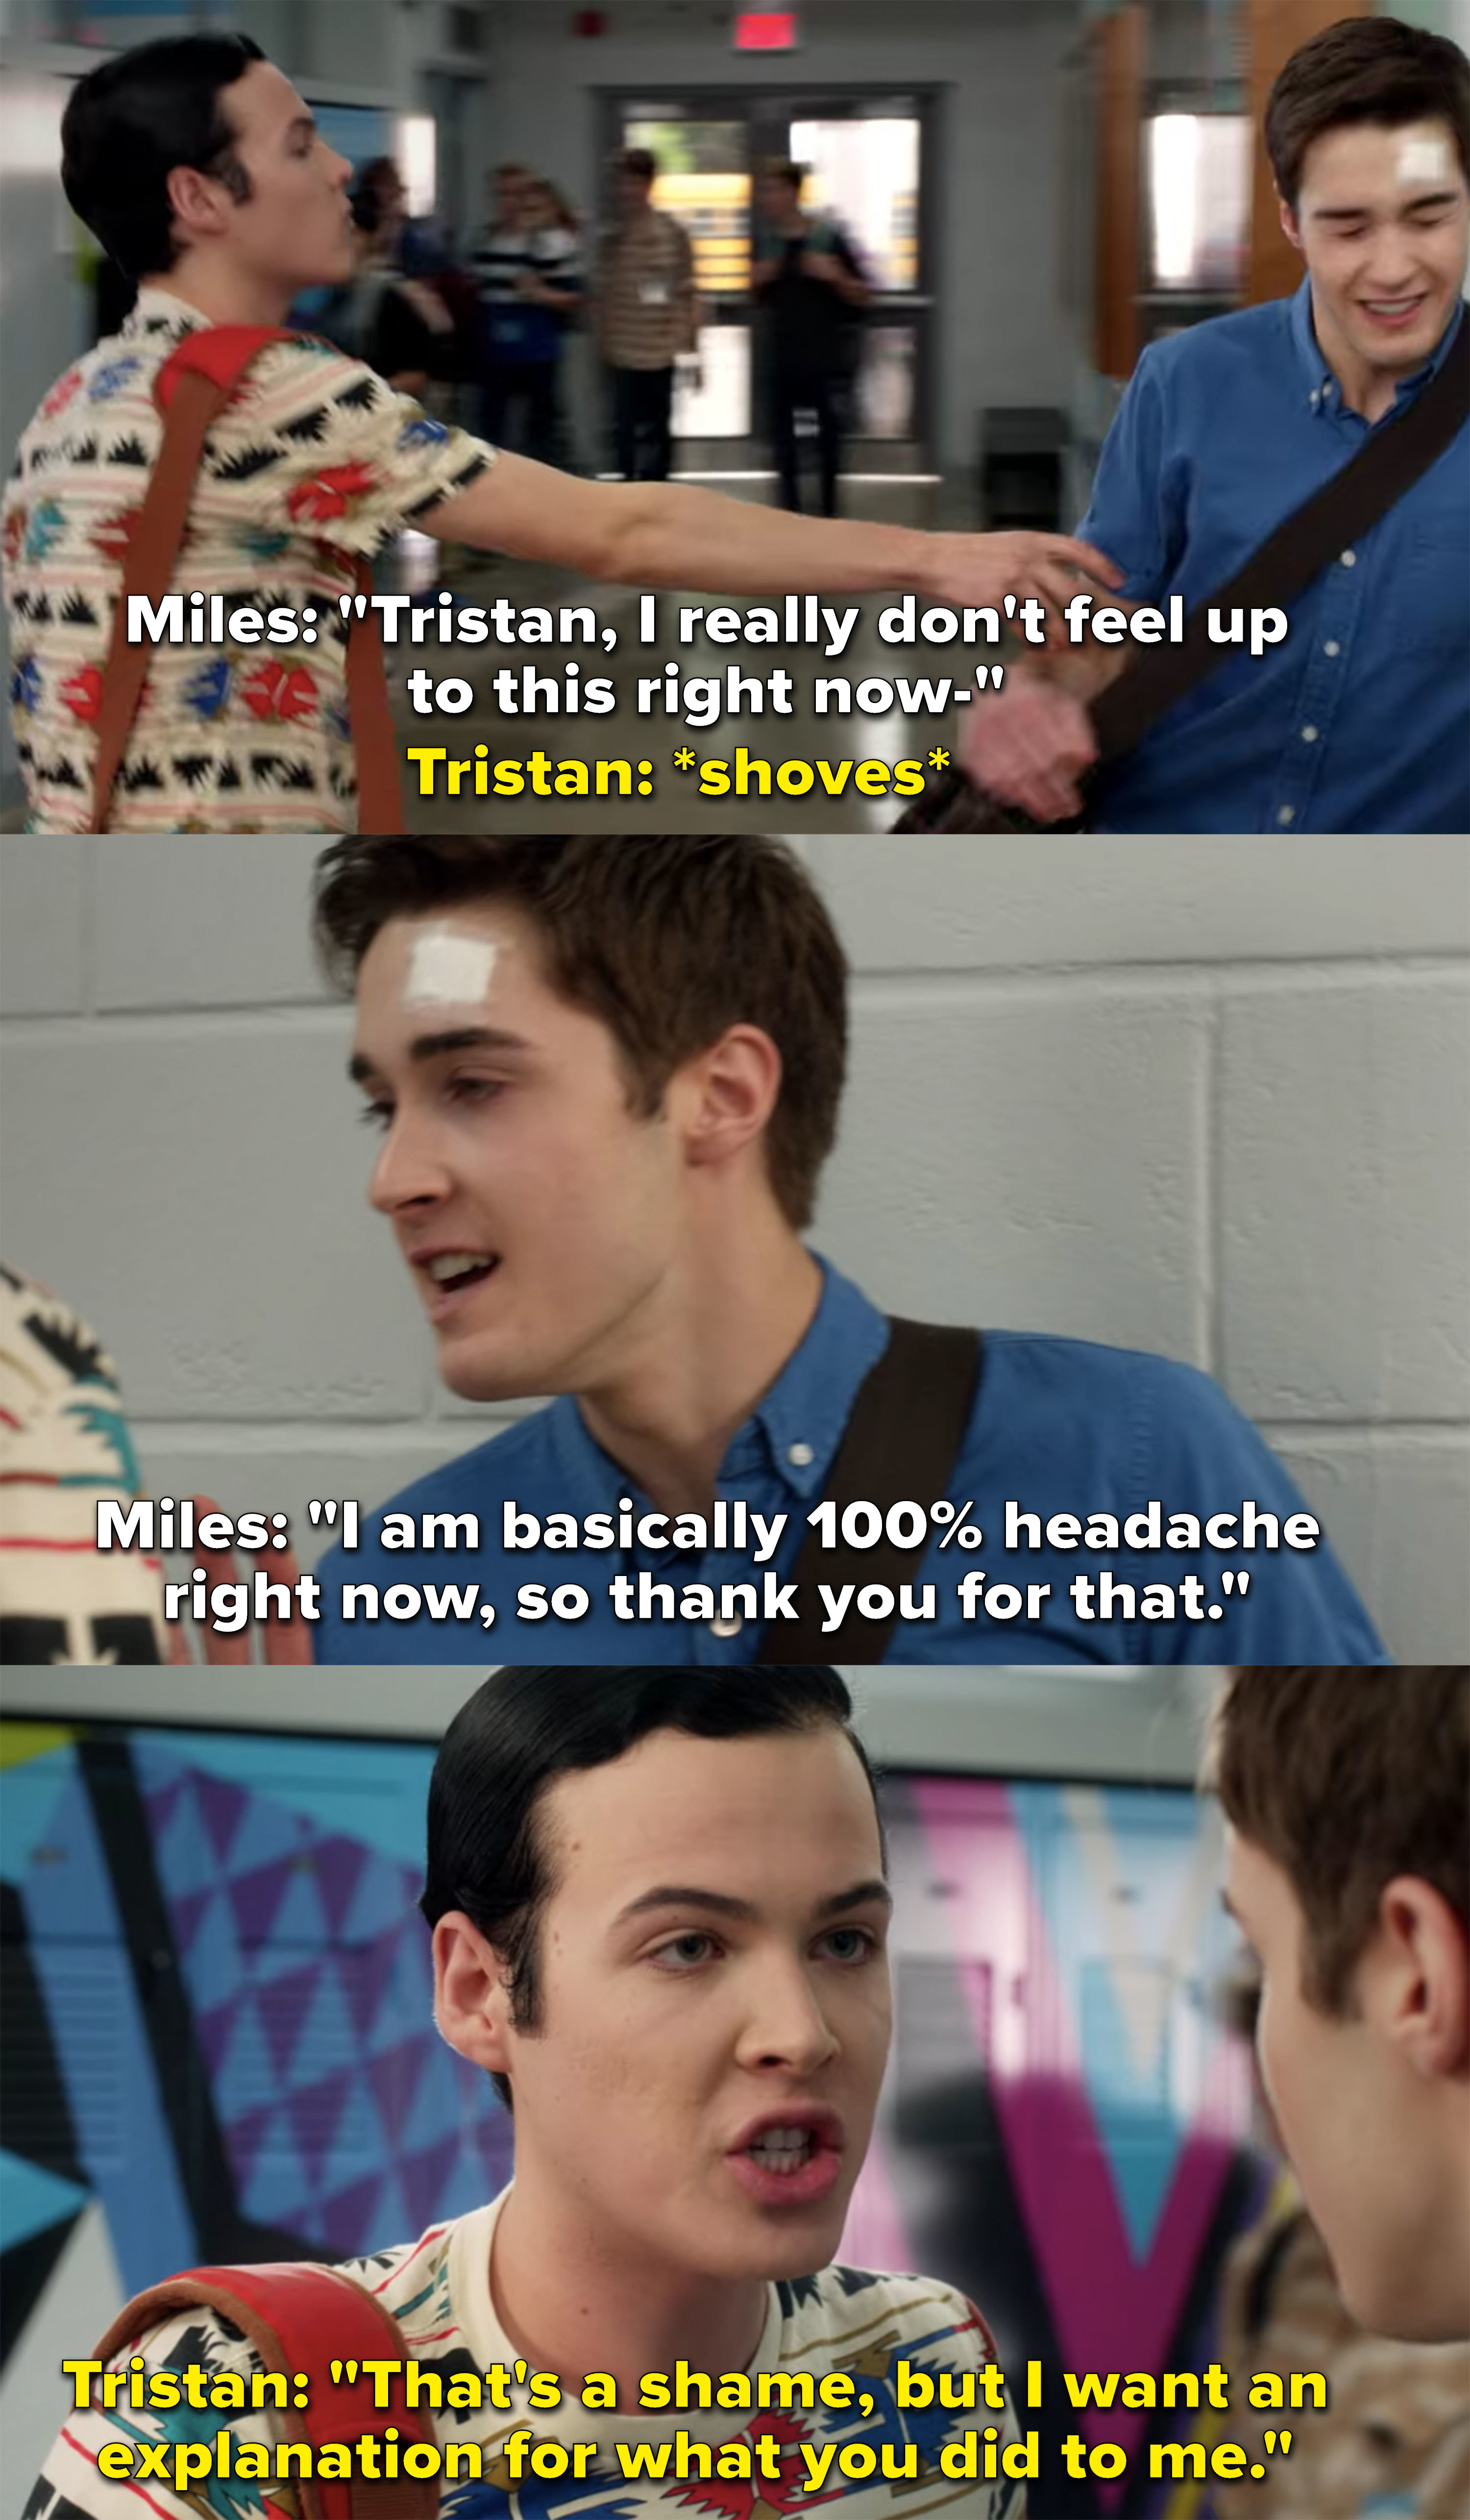 """Tristan pushes Miles into a wall, """"I want an explanation for what you did to me"""""""